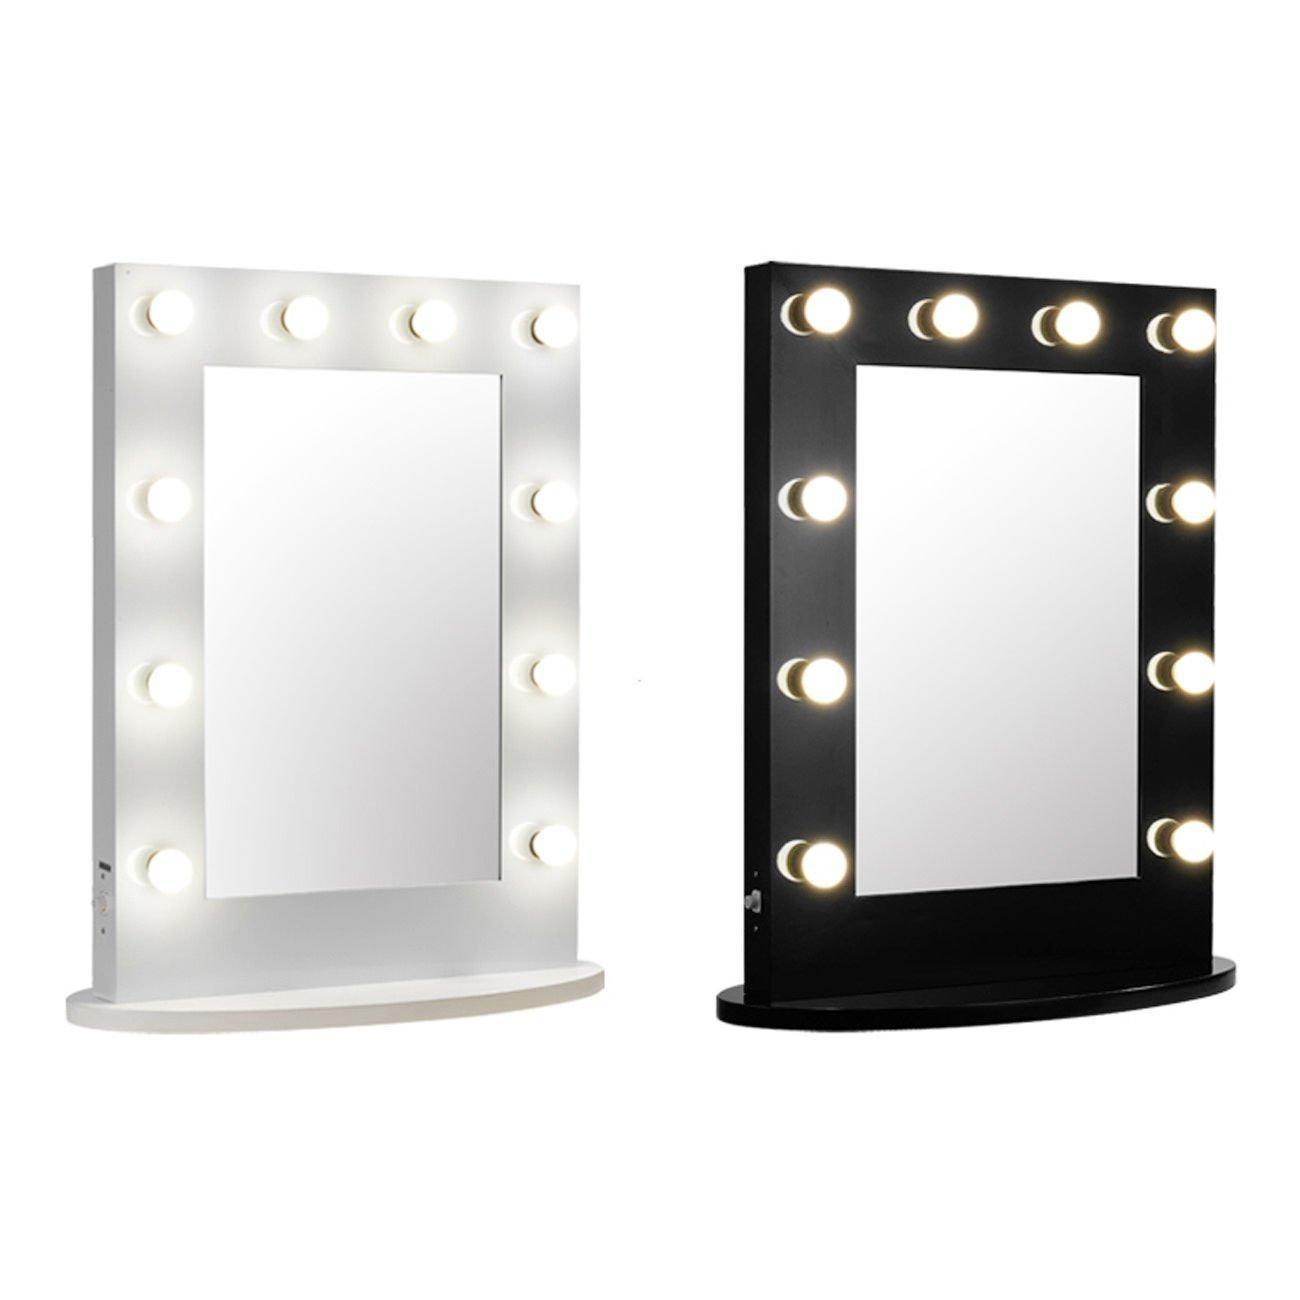 How to install makeup mirror with lights wall mounted for Wall mounted mirror